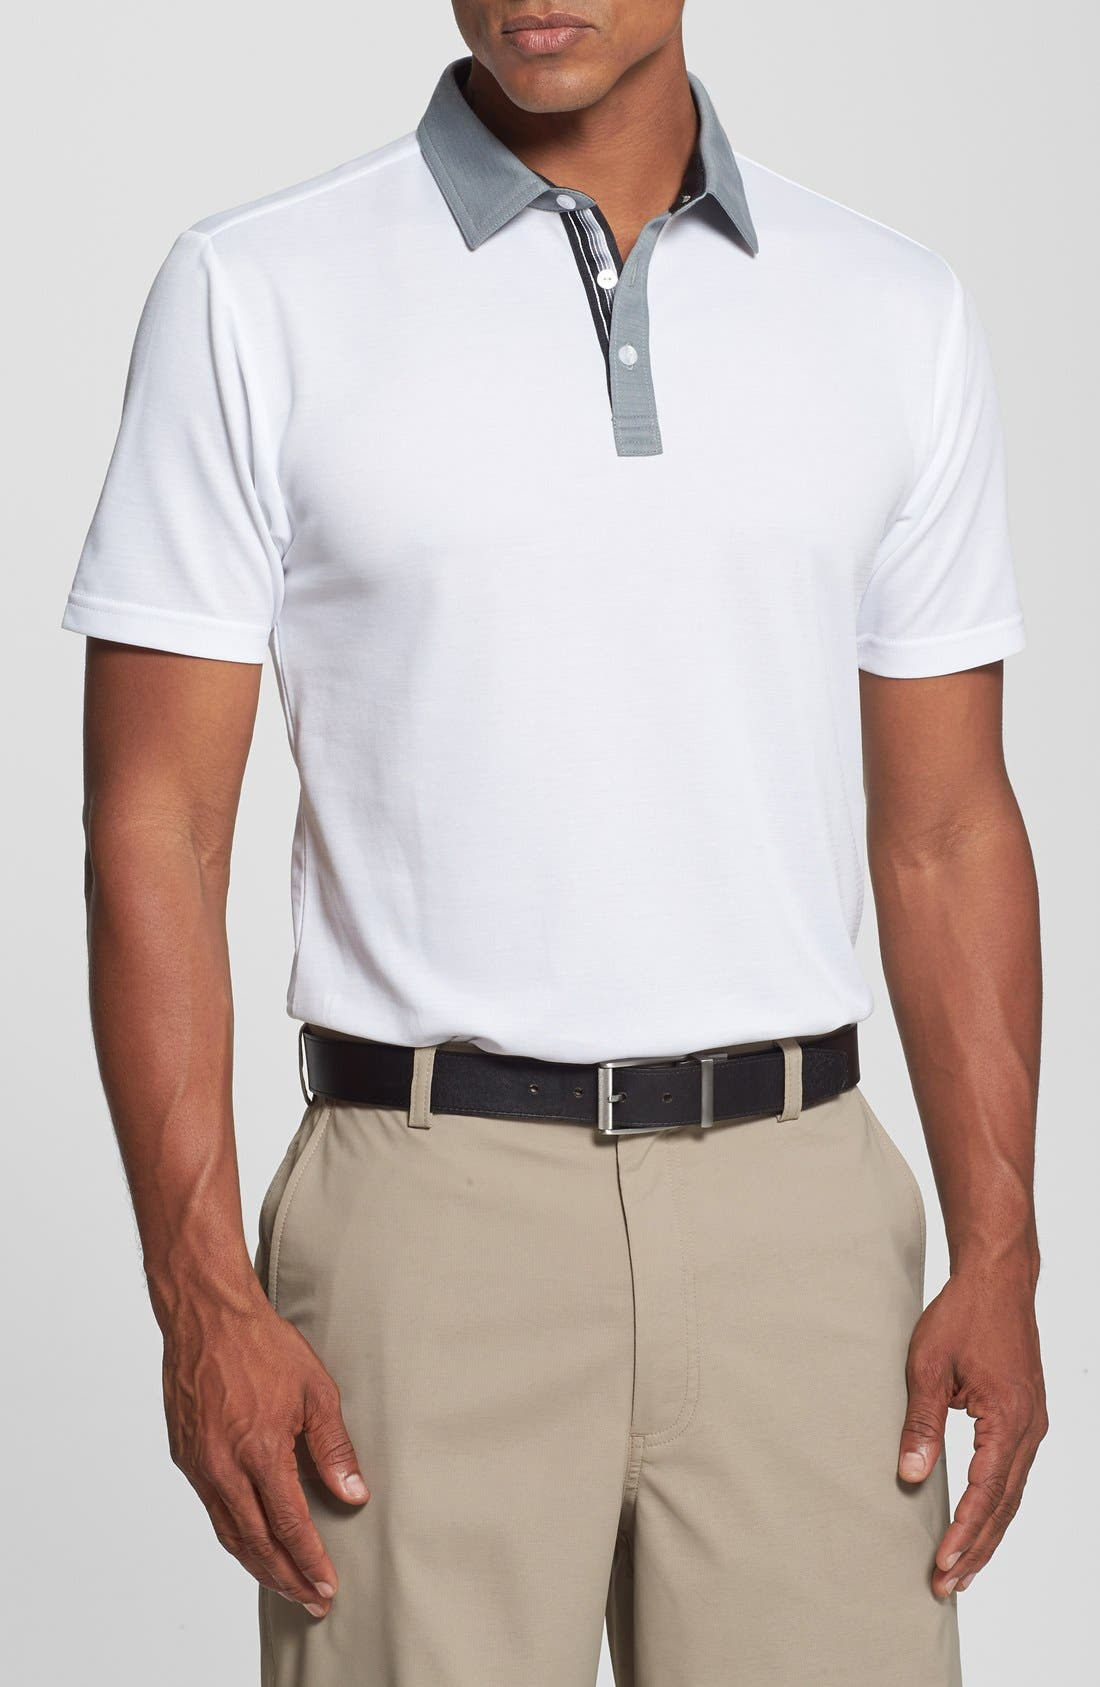 Alternate Image 1 Selected - Travis Mathew 'Collins' Trim Fit Performance Golf Polo